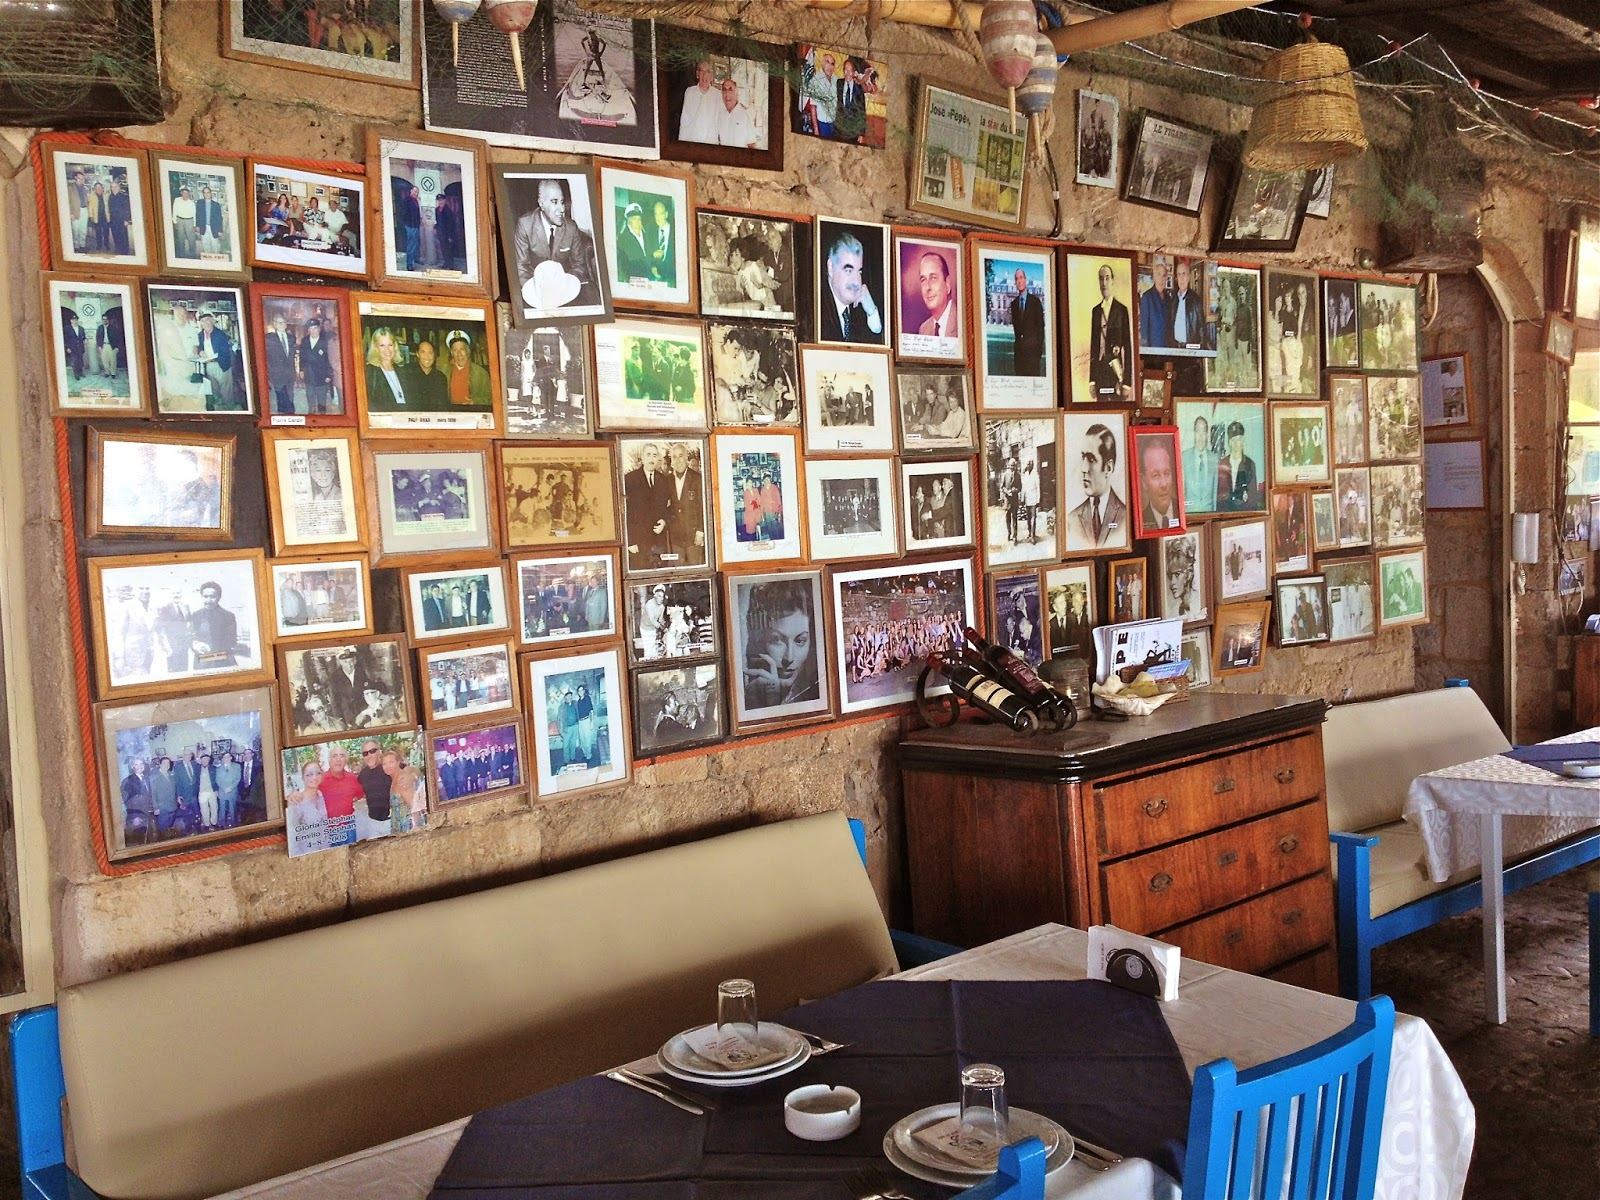 Pictures cover the walls of Pepe's Fishing Club in Byblos.